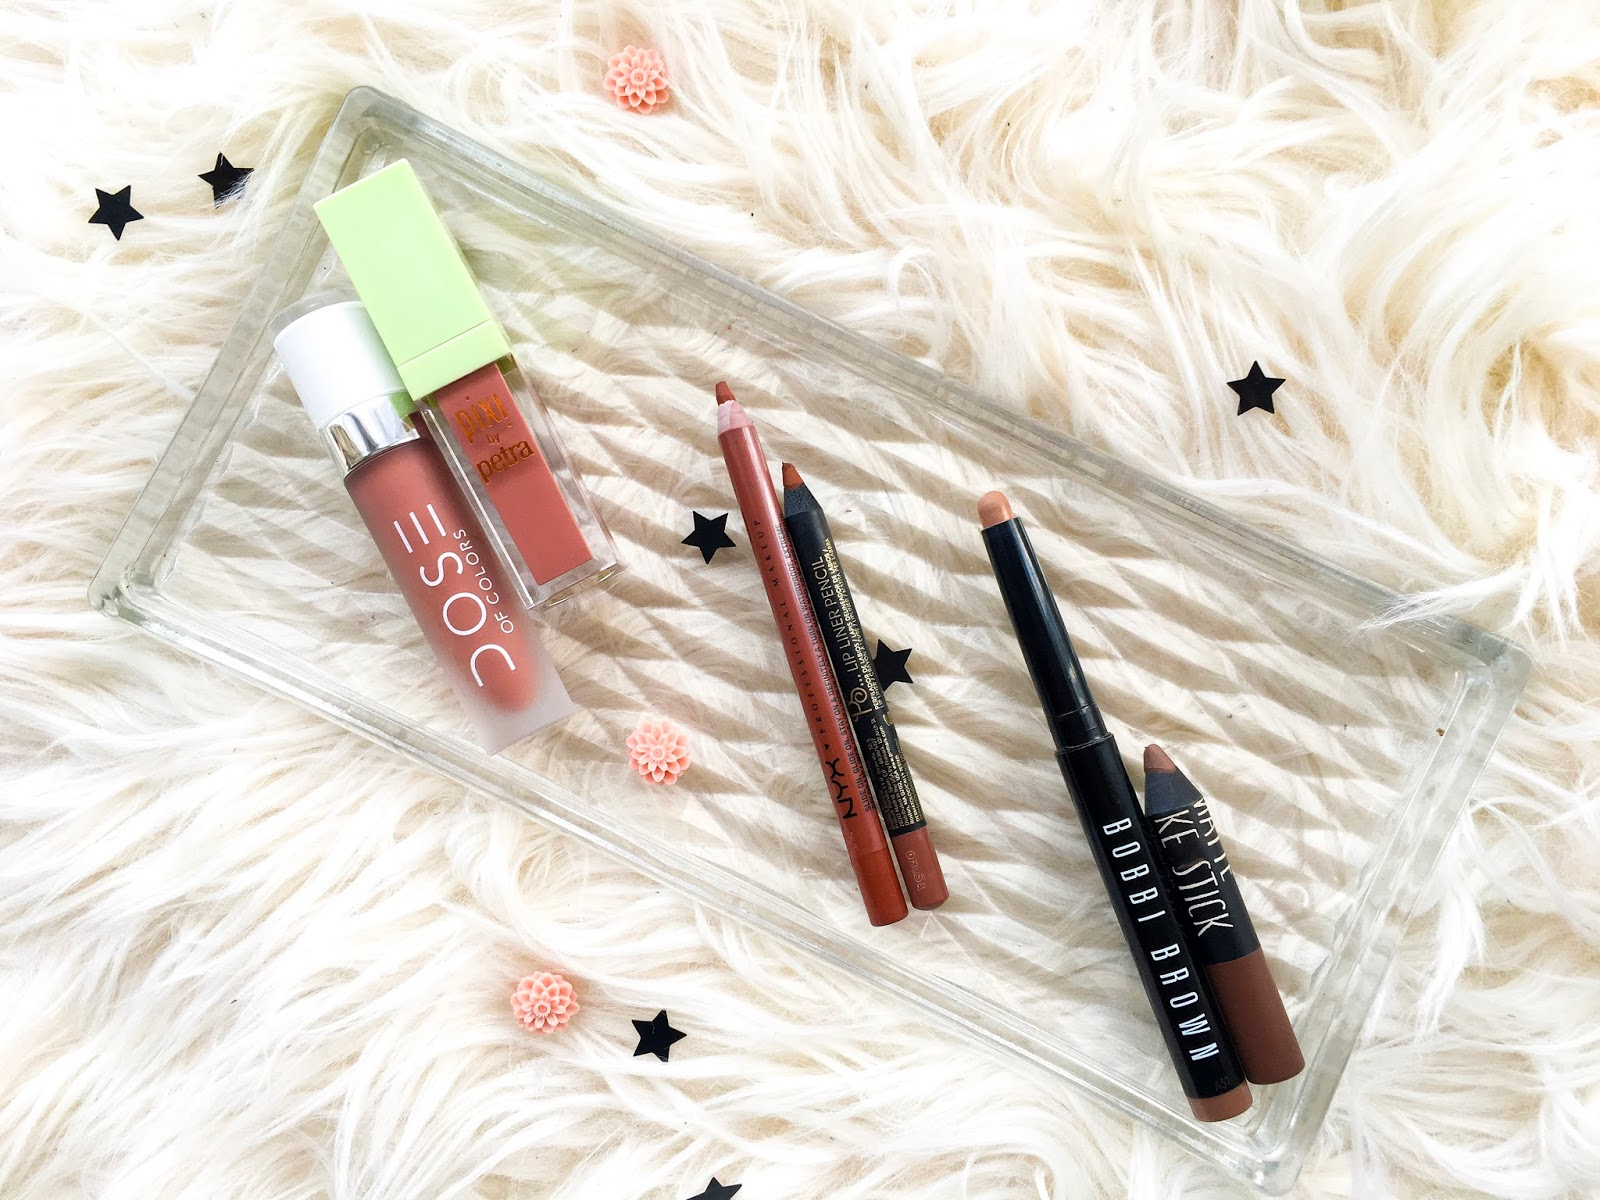 dose of colors truffle vs pixi mattelast matte beige, bobbi brown eyeshadow stick taupe vs topshop smoke stick sphere, nyx slide on lip liner intimidate vs primark lip liner toffee